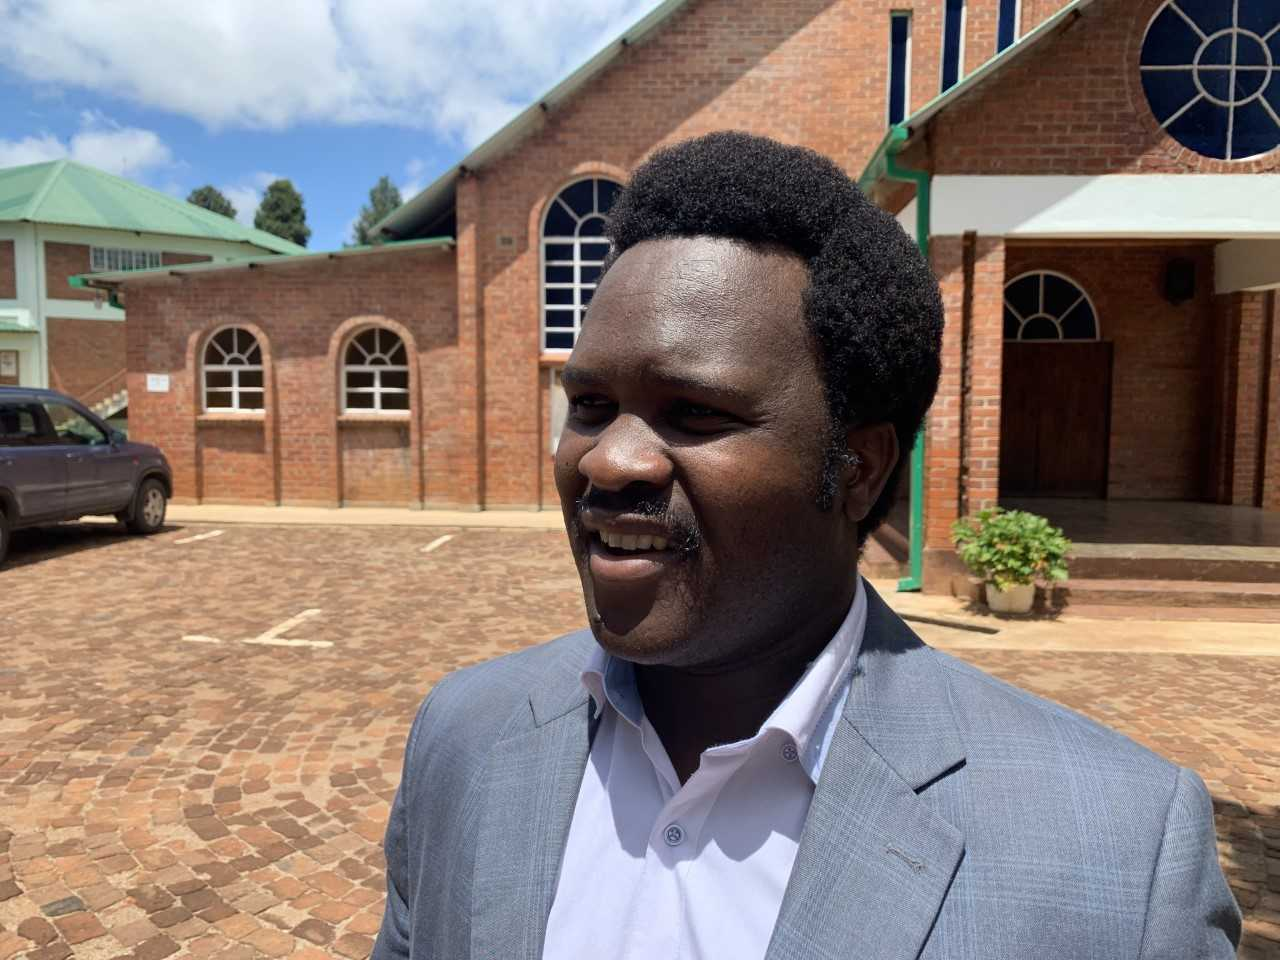 Roman Catholic Priest Cloudy Maganga is trying to reduce substance abuse among youths by keeping them busy and offering counseling.